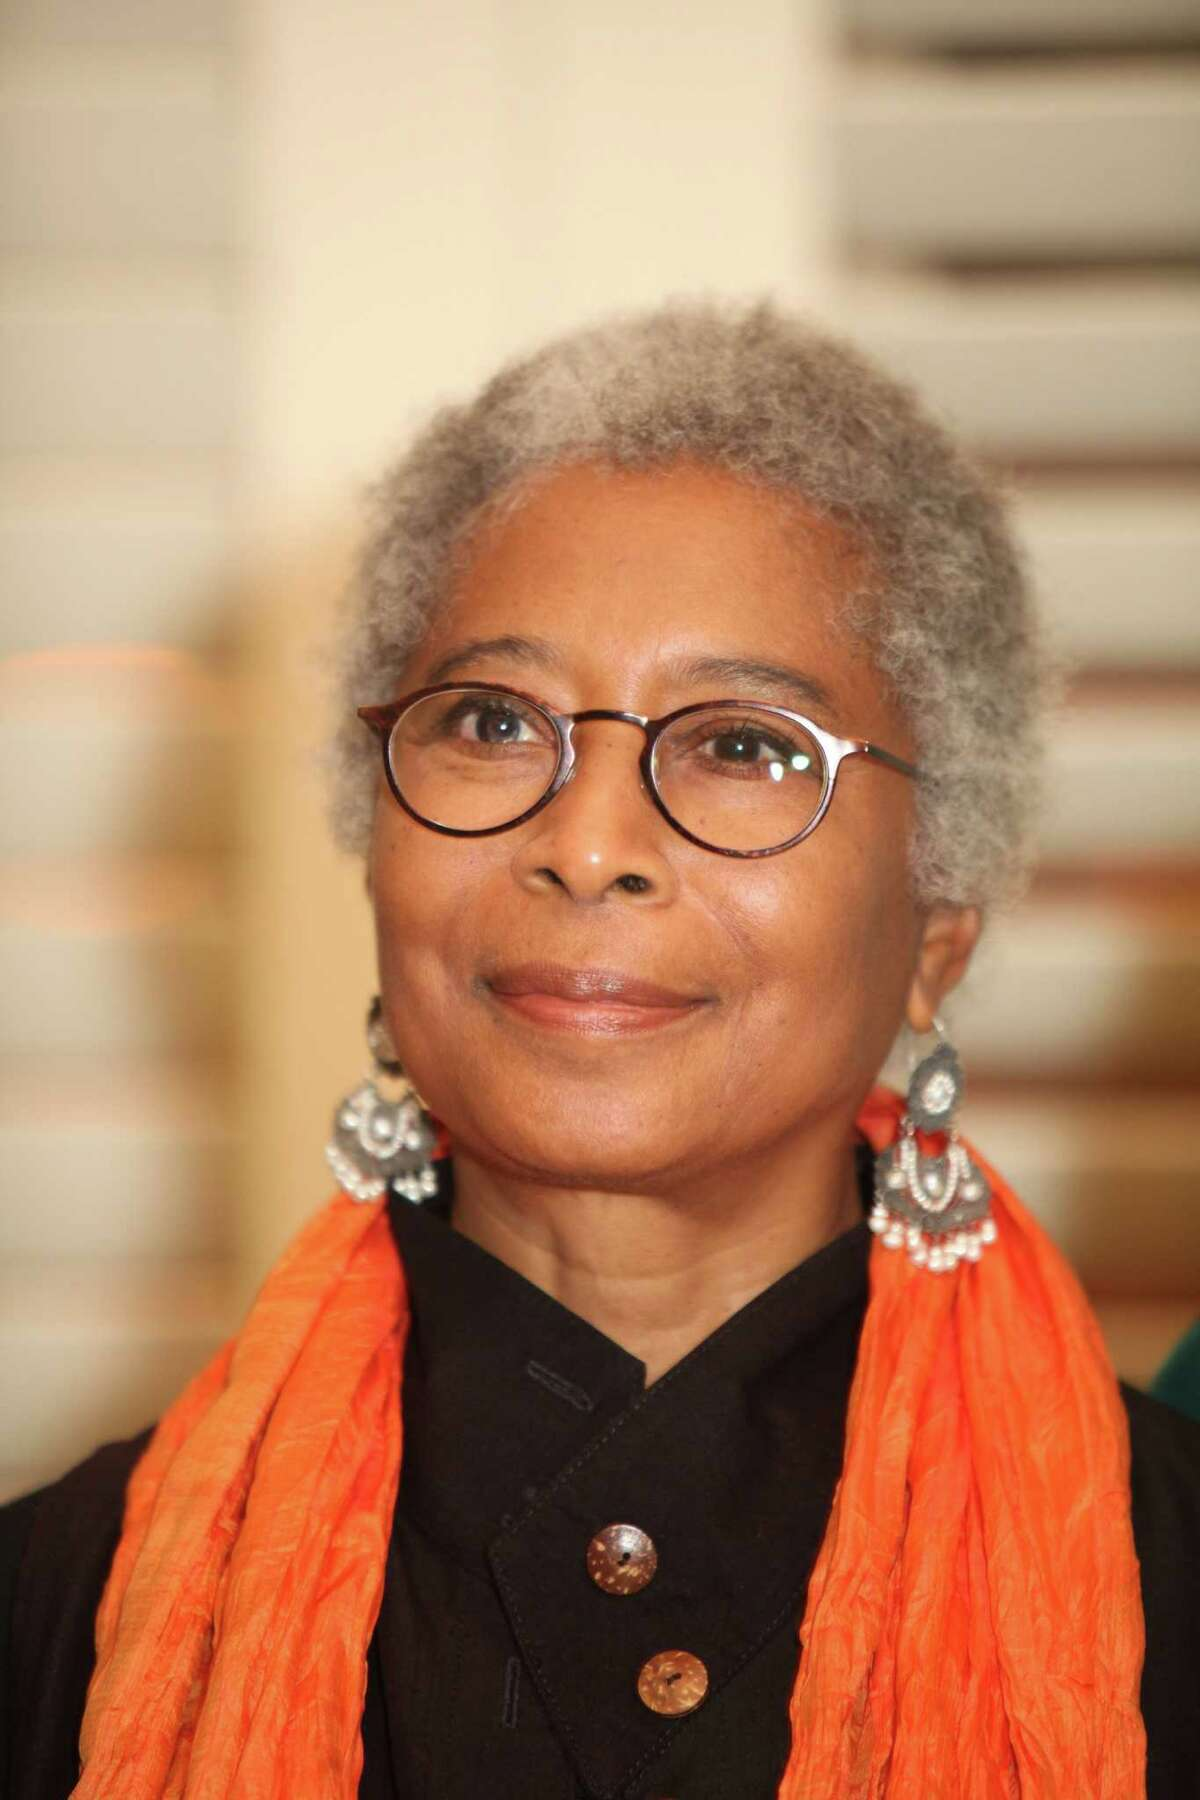 Alice Walker- Author/Activist Walker is the author of The Color Purple which was awarded the Pulitzer Prize and National Book Award in 1983.